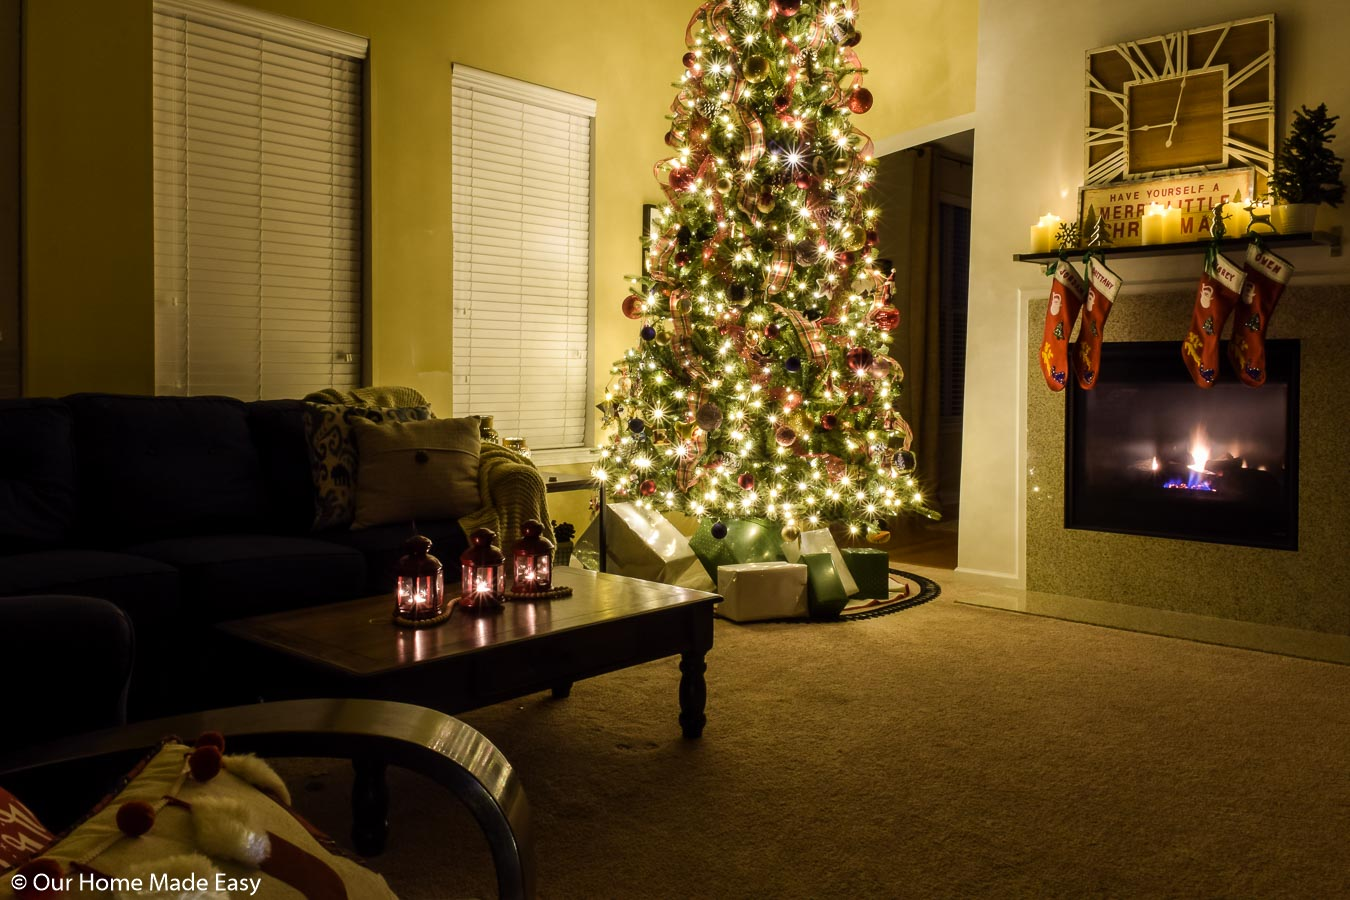 Our 12-foot Christmas tree owns our living room space with bright lights and festive decor